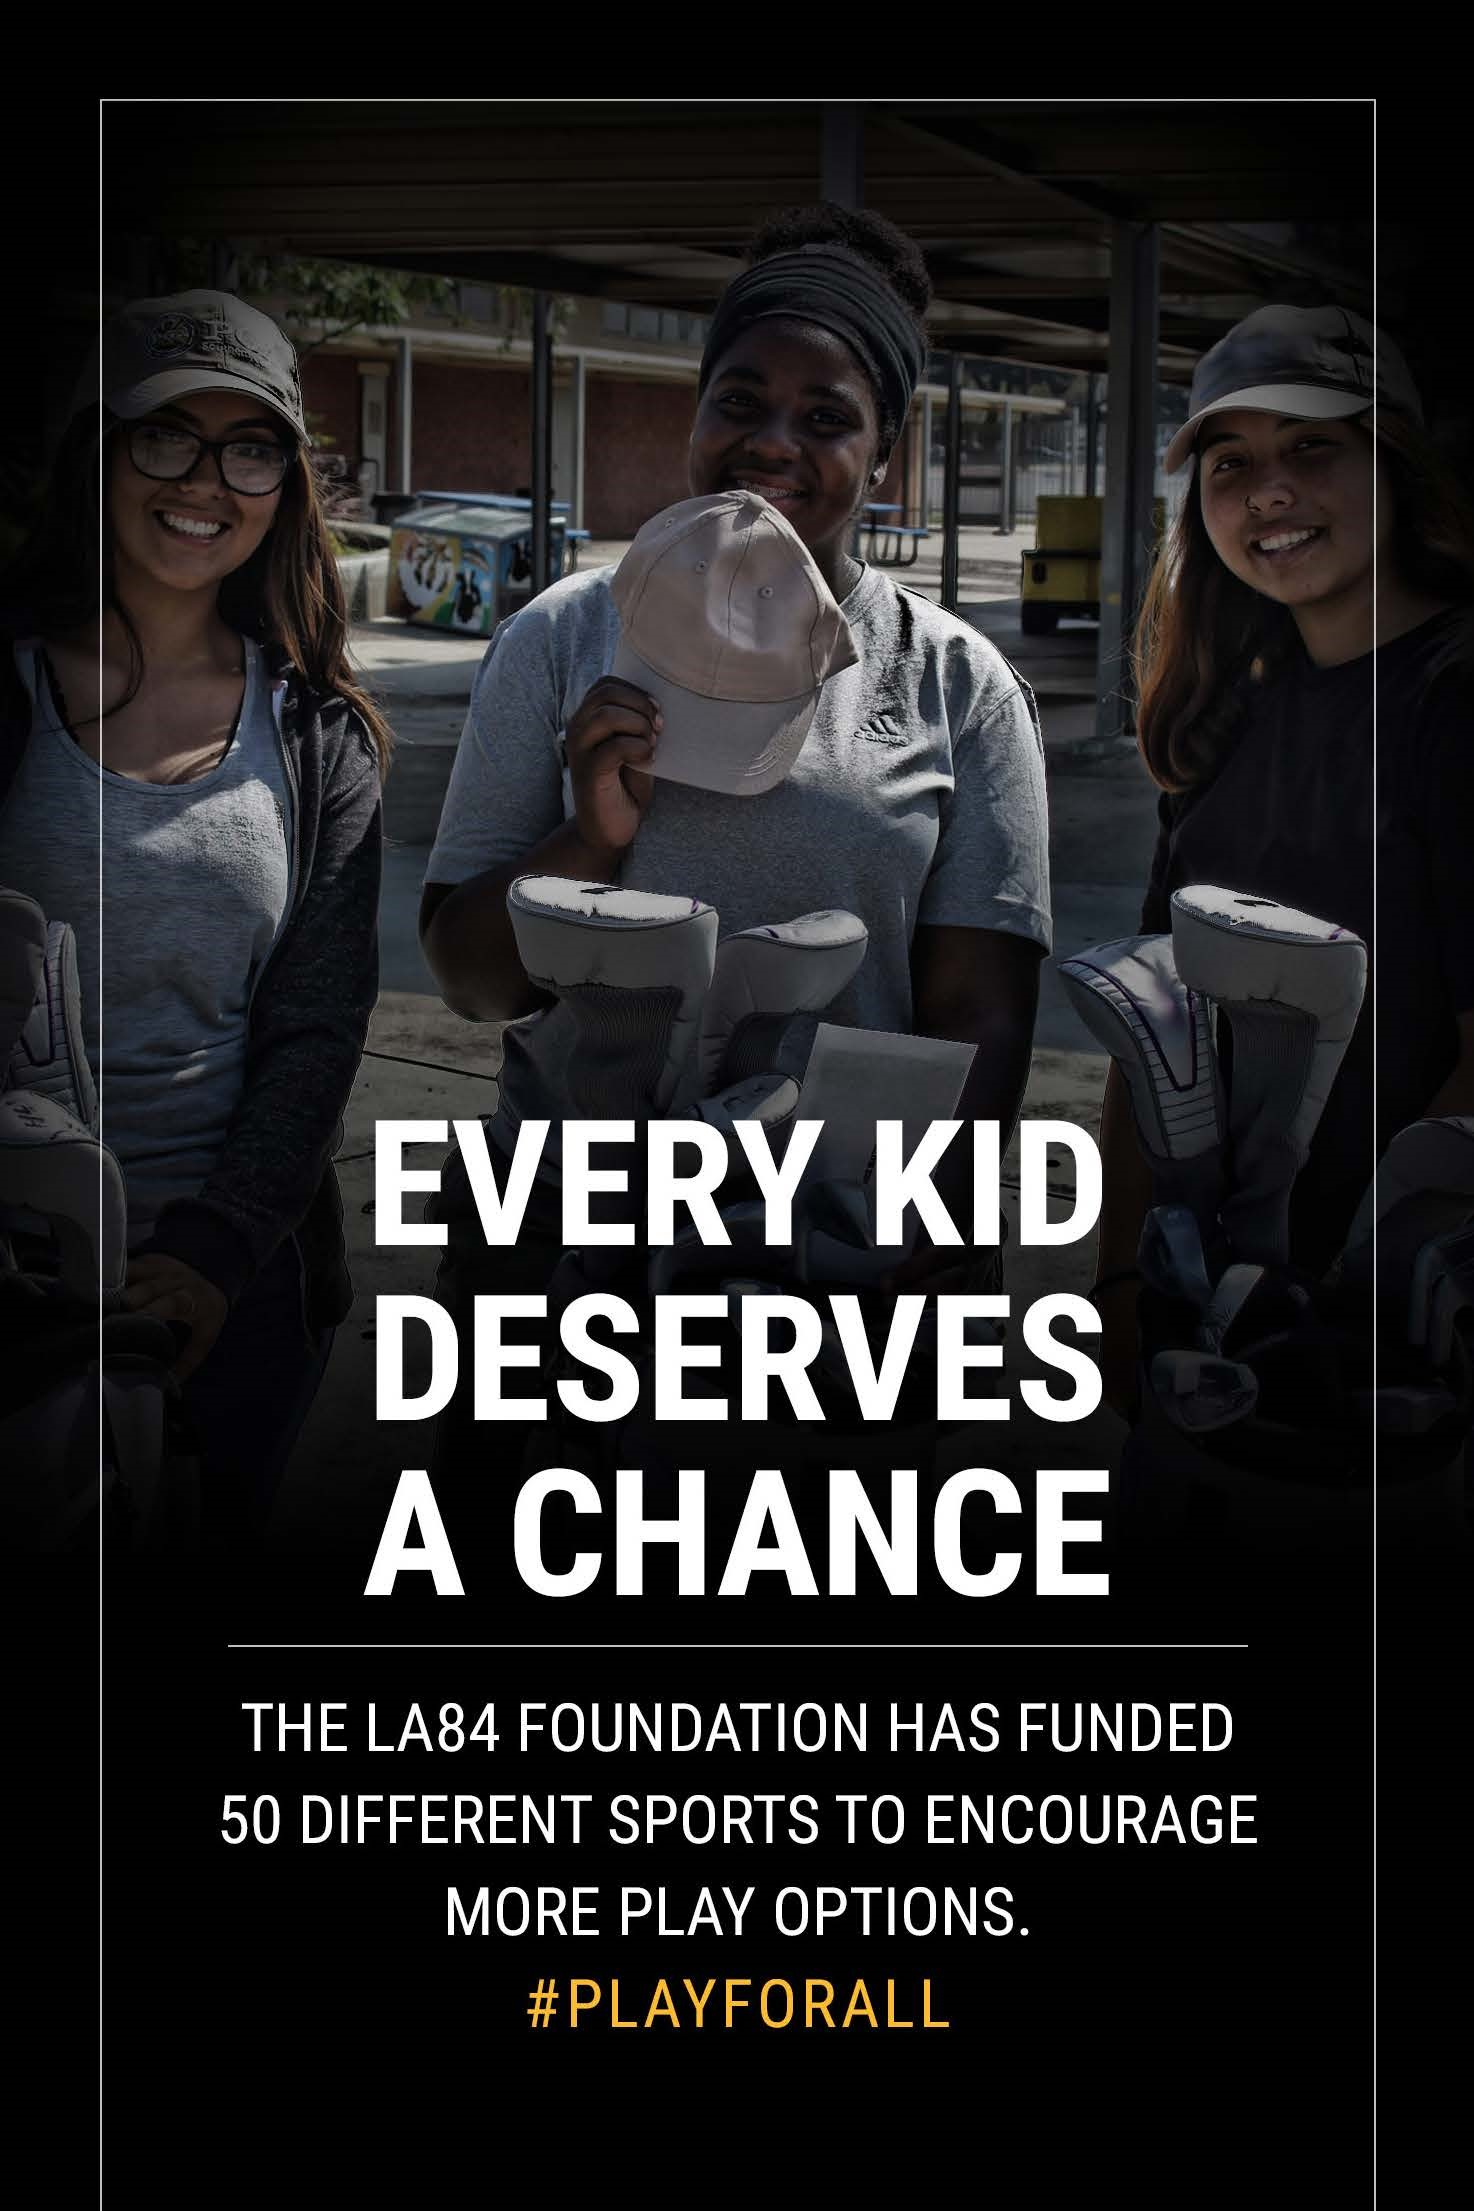 Every-Kid-Deserves-A-Chance-10-15-17-website